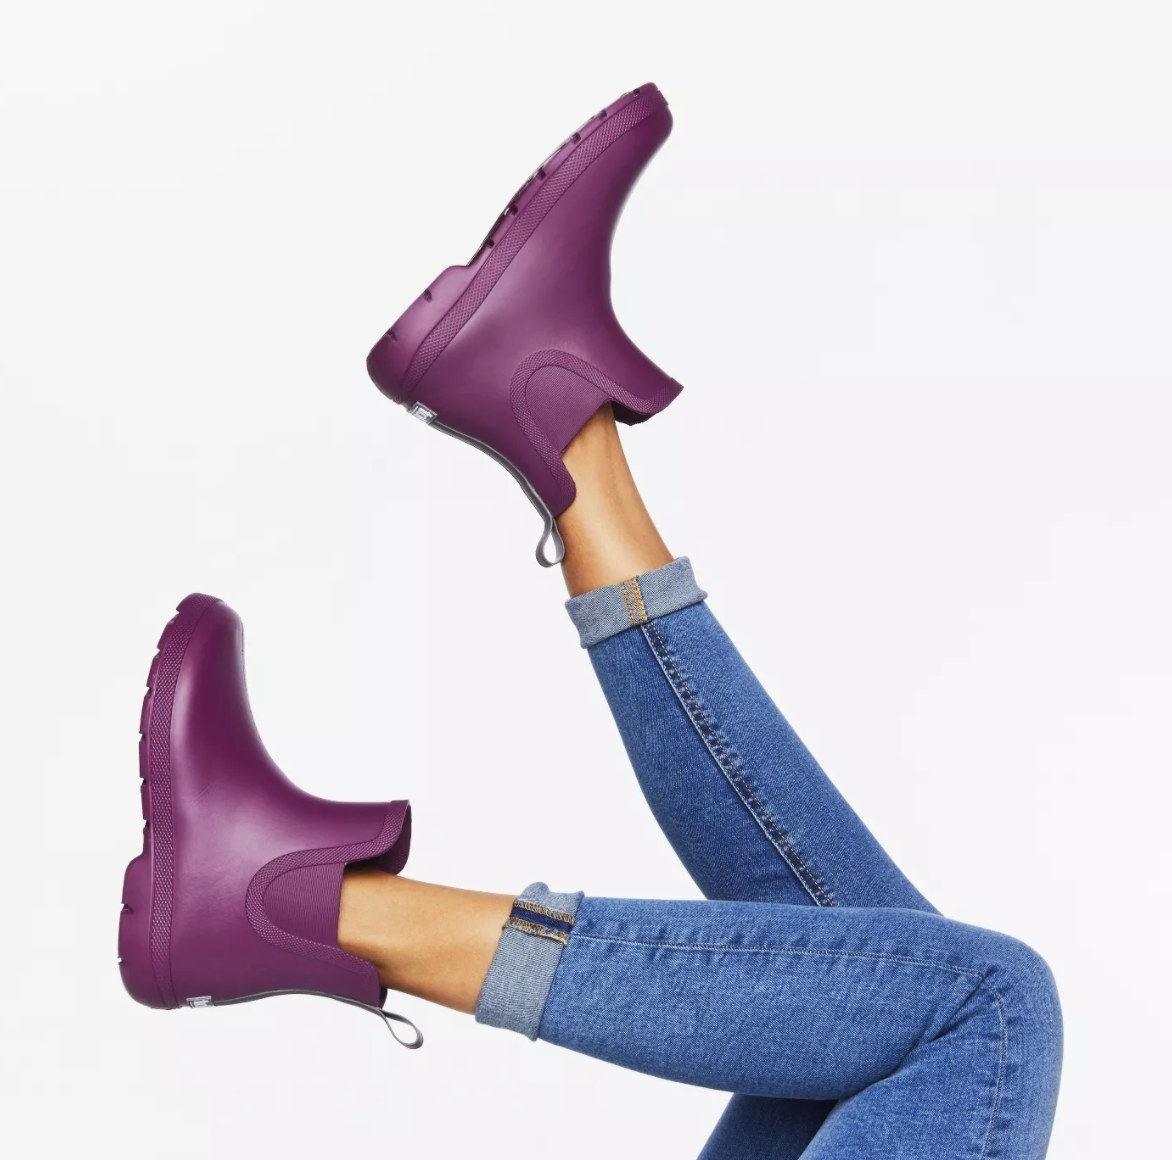 A model's legs show off a pair of ankle-length purple rubber rain boots